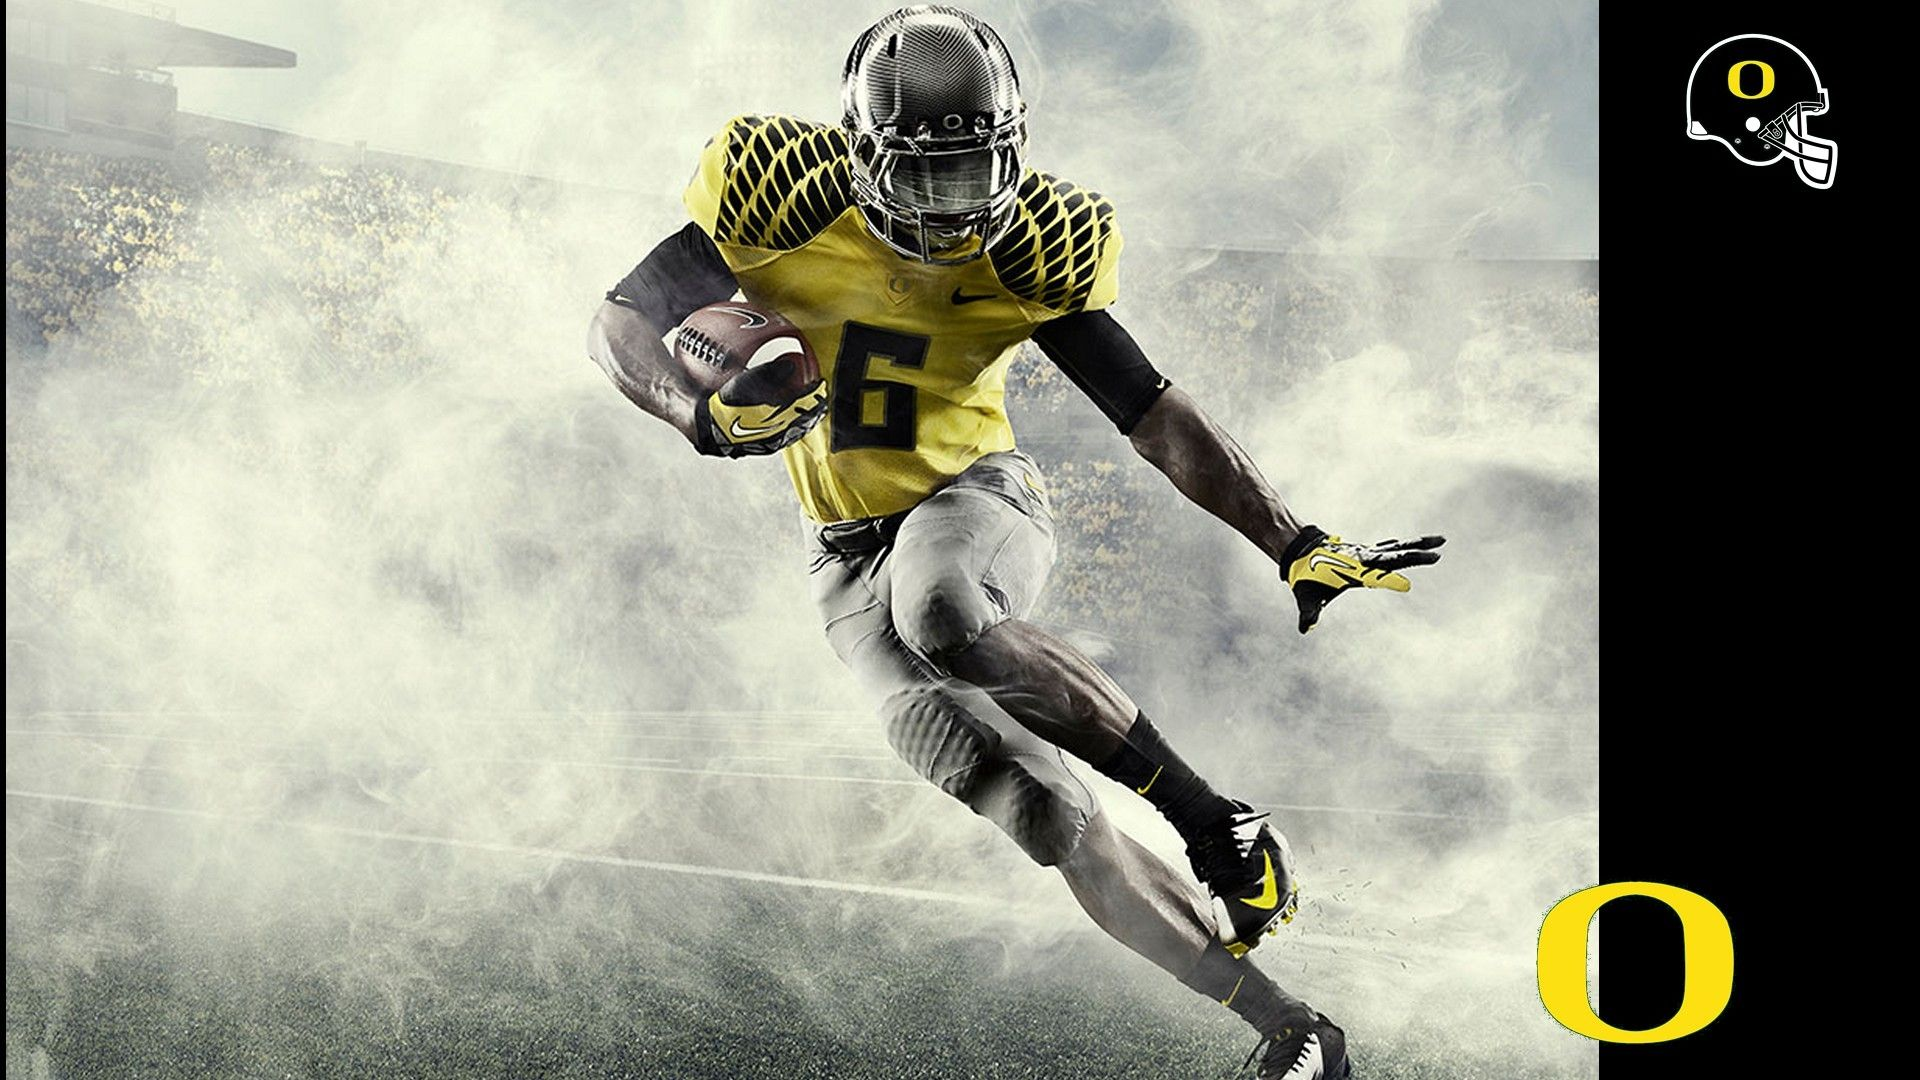 College Football Nike Oregon Ducks Background HD Wallpaper